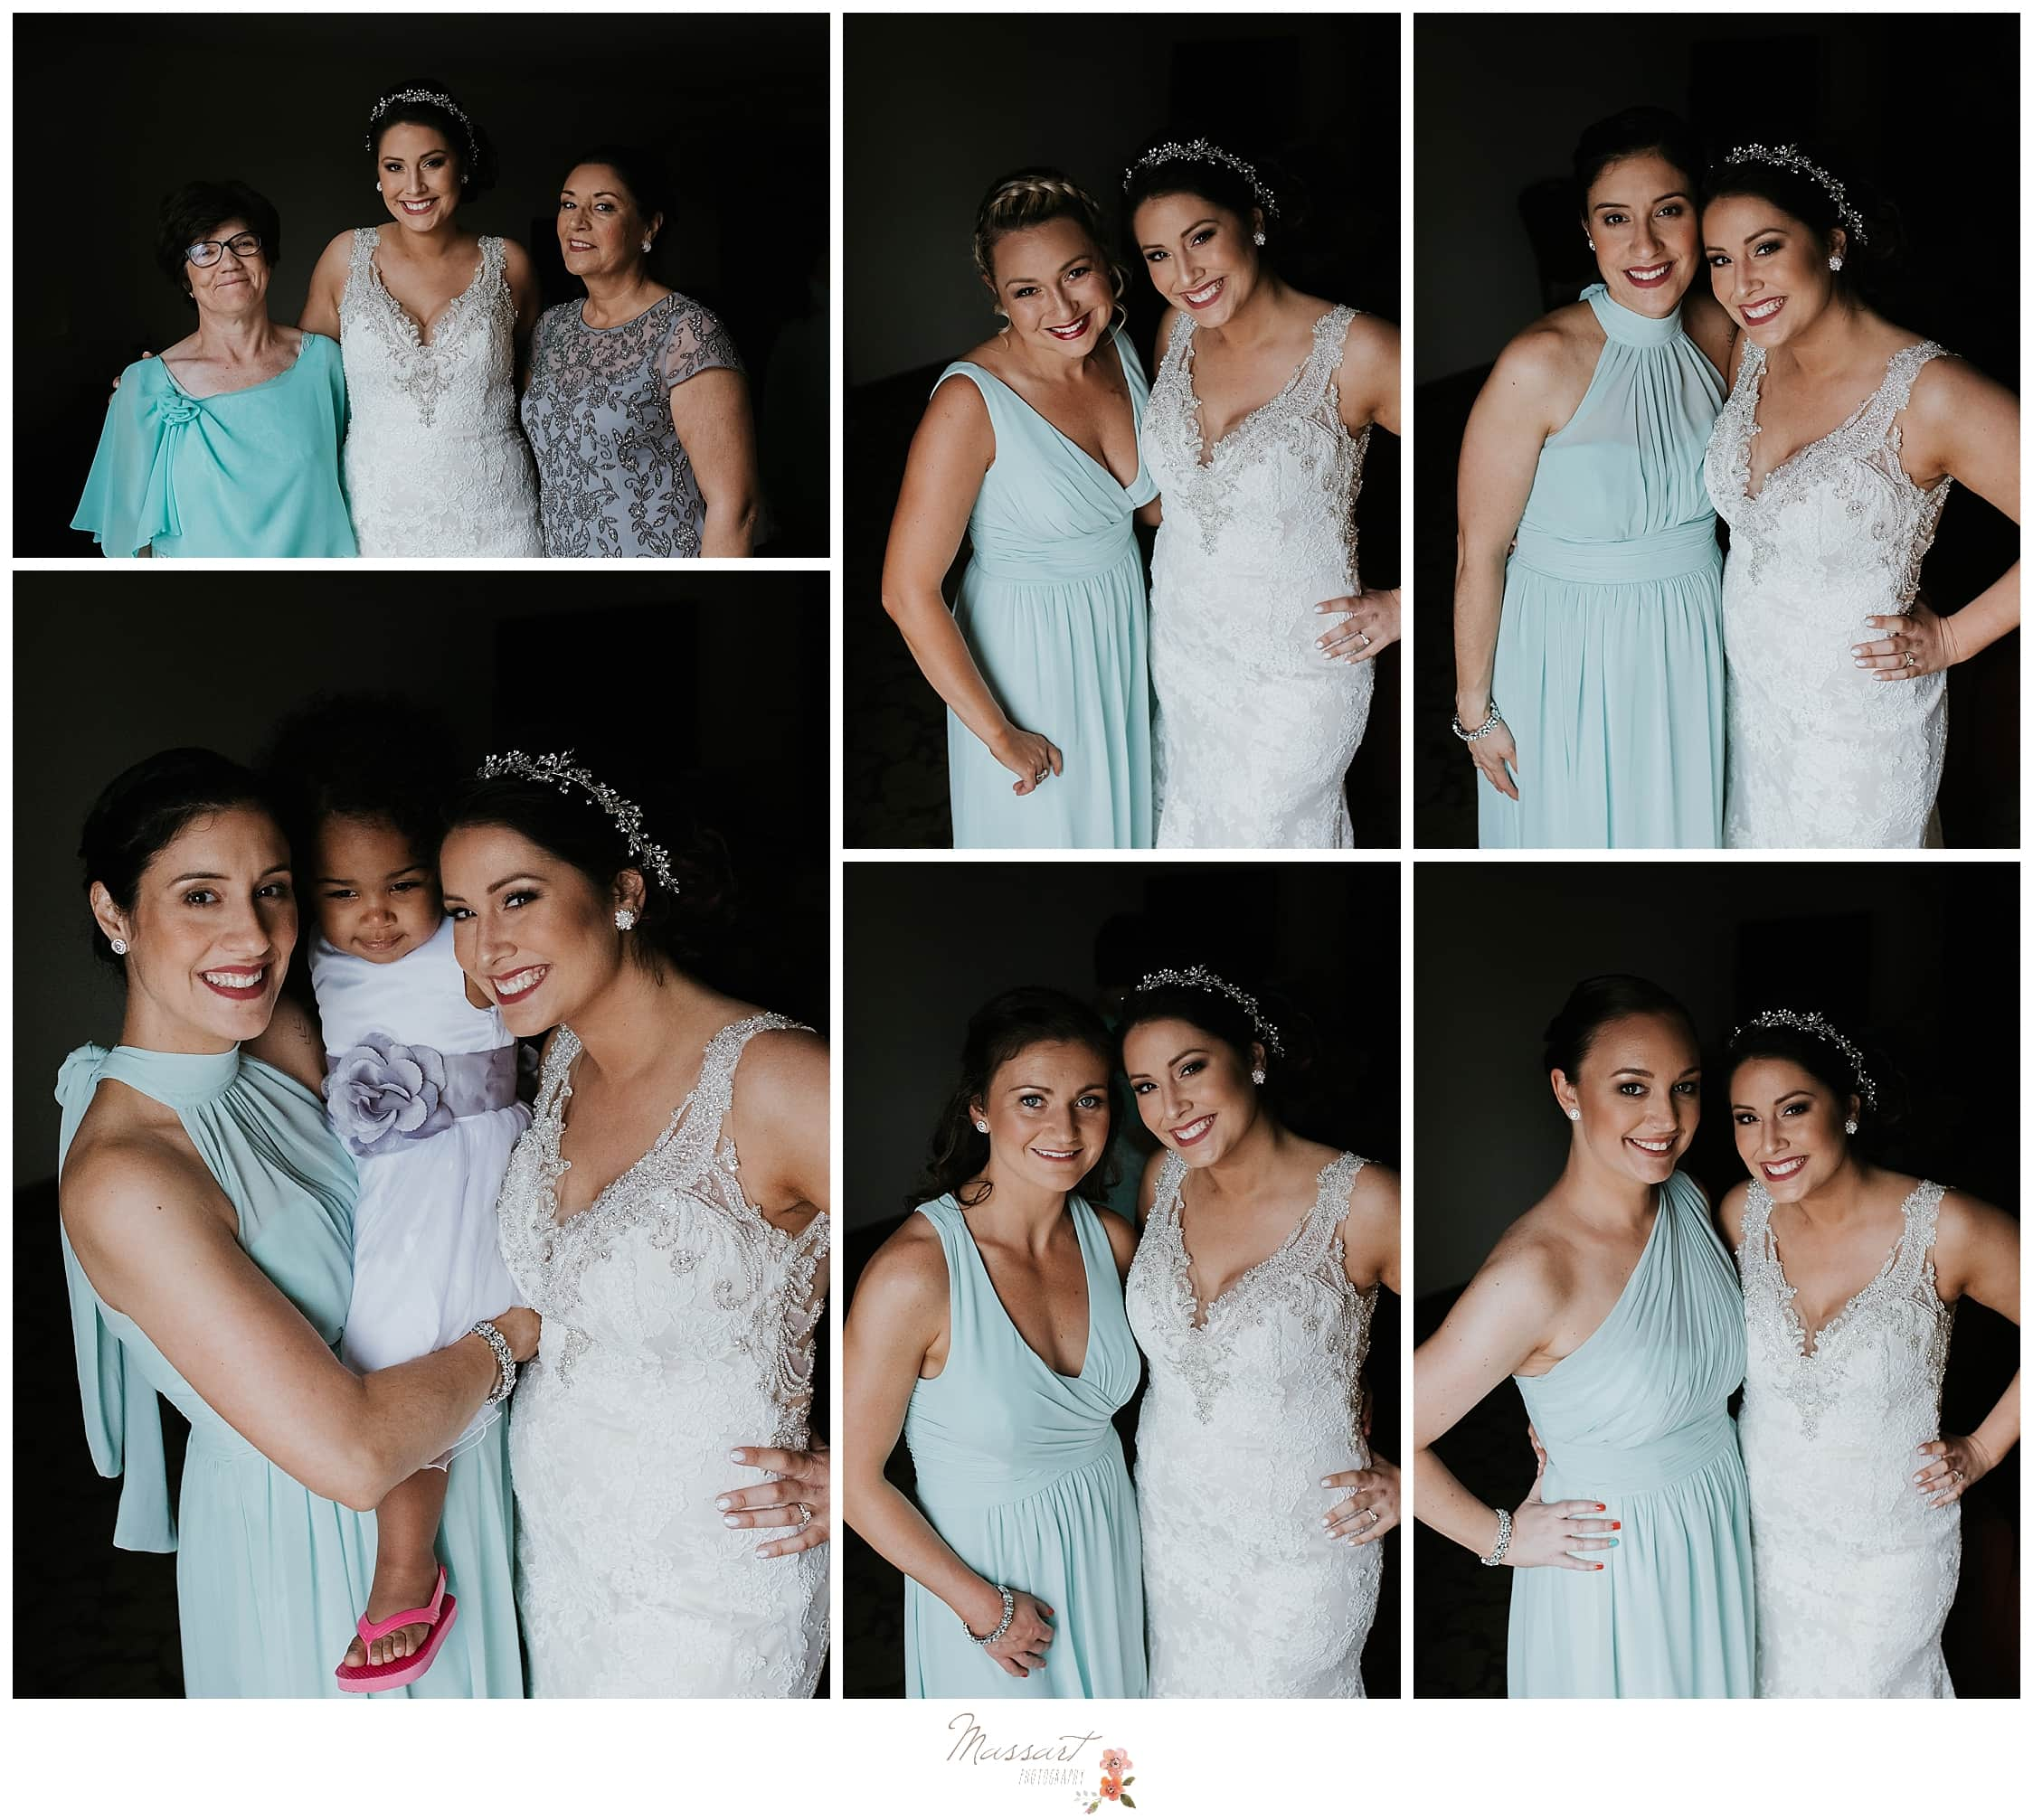 Bride with bridesmaids in teal bridesmaids dresses before summer wedding photographed by CT and RI wedding photographers Massart Photography.